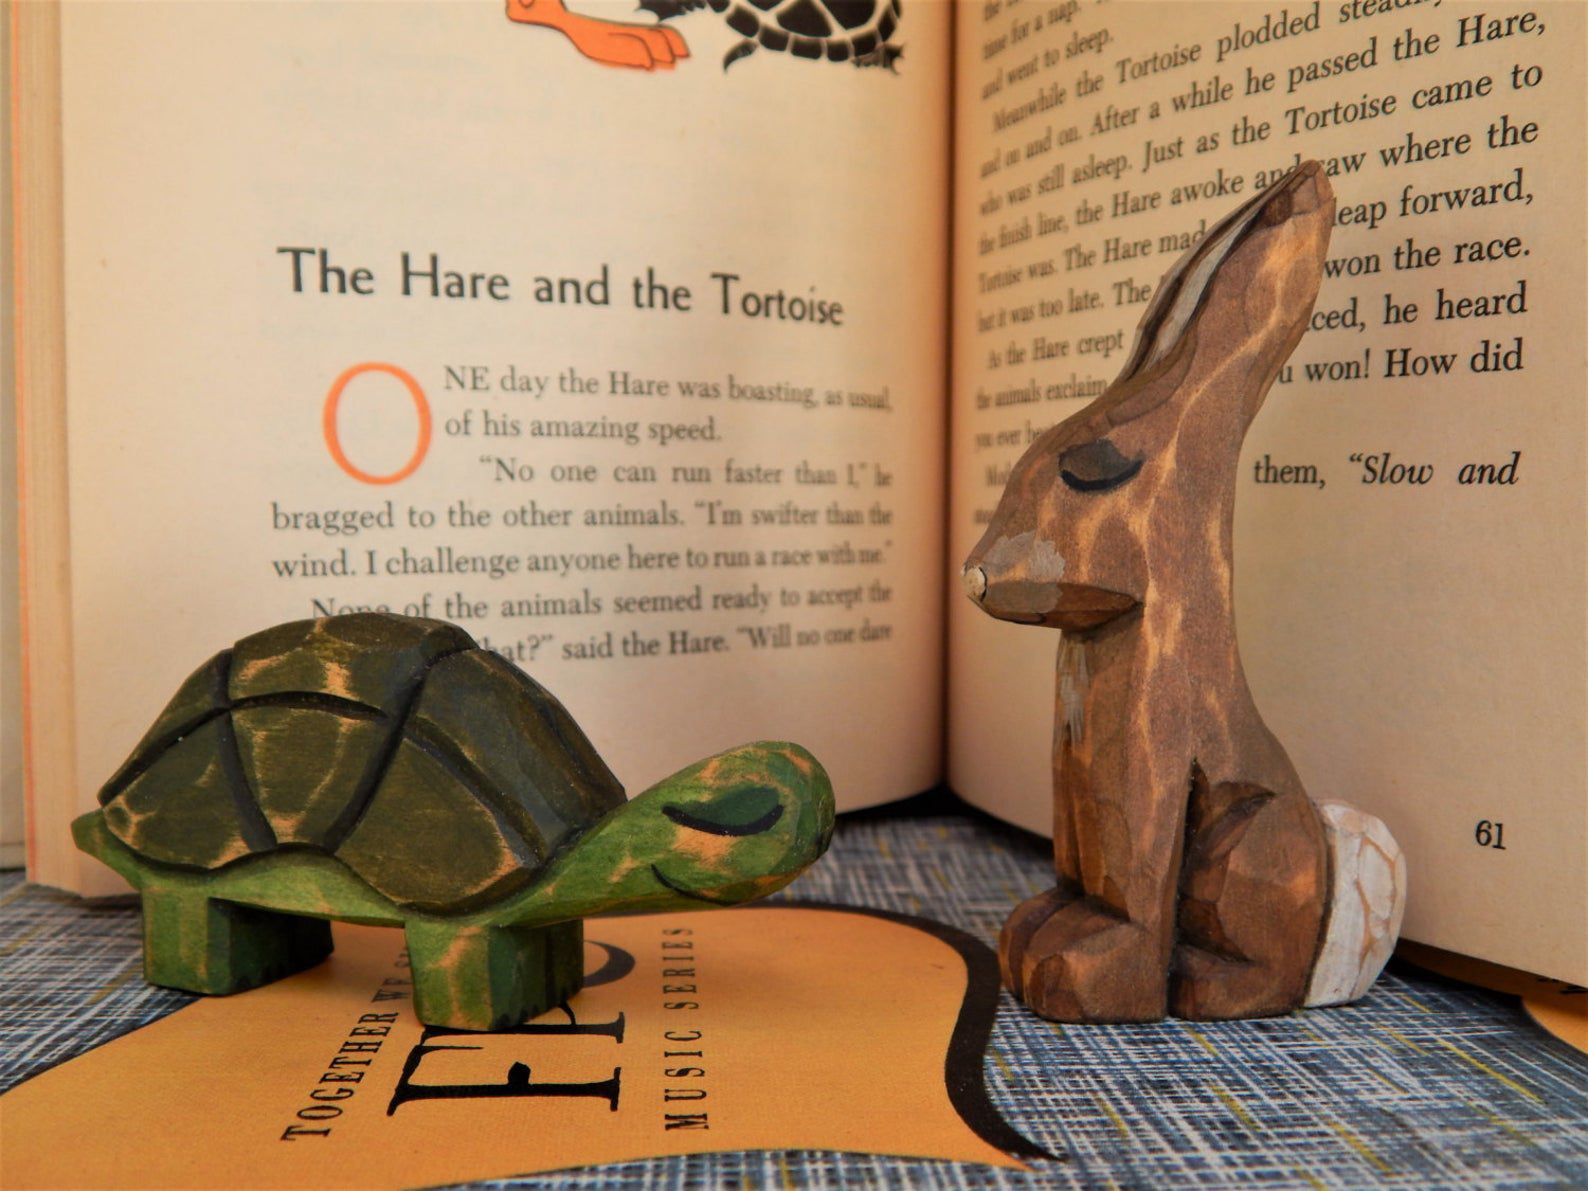 Image of wooden tortoise and hare.